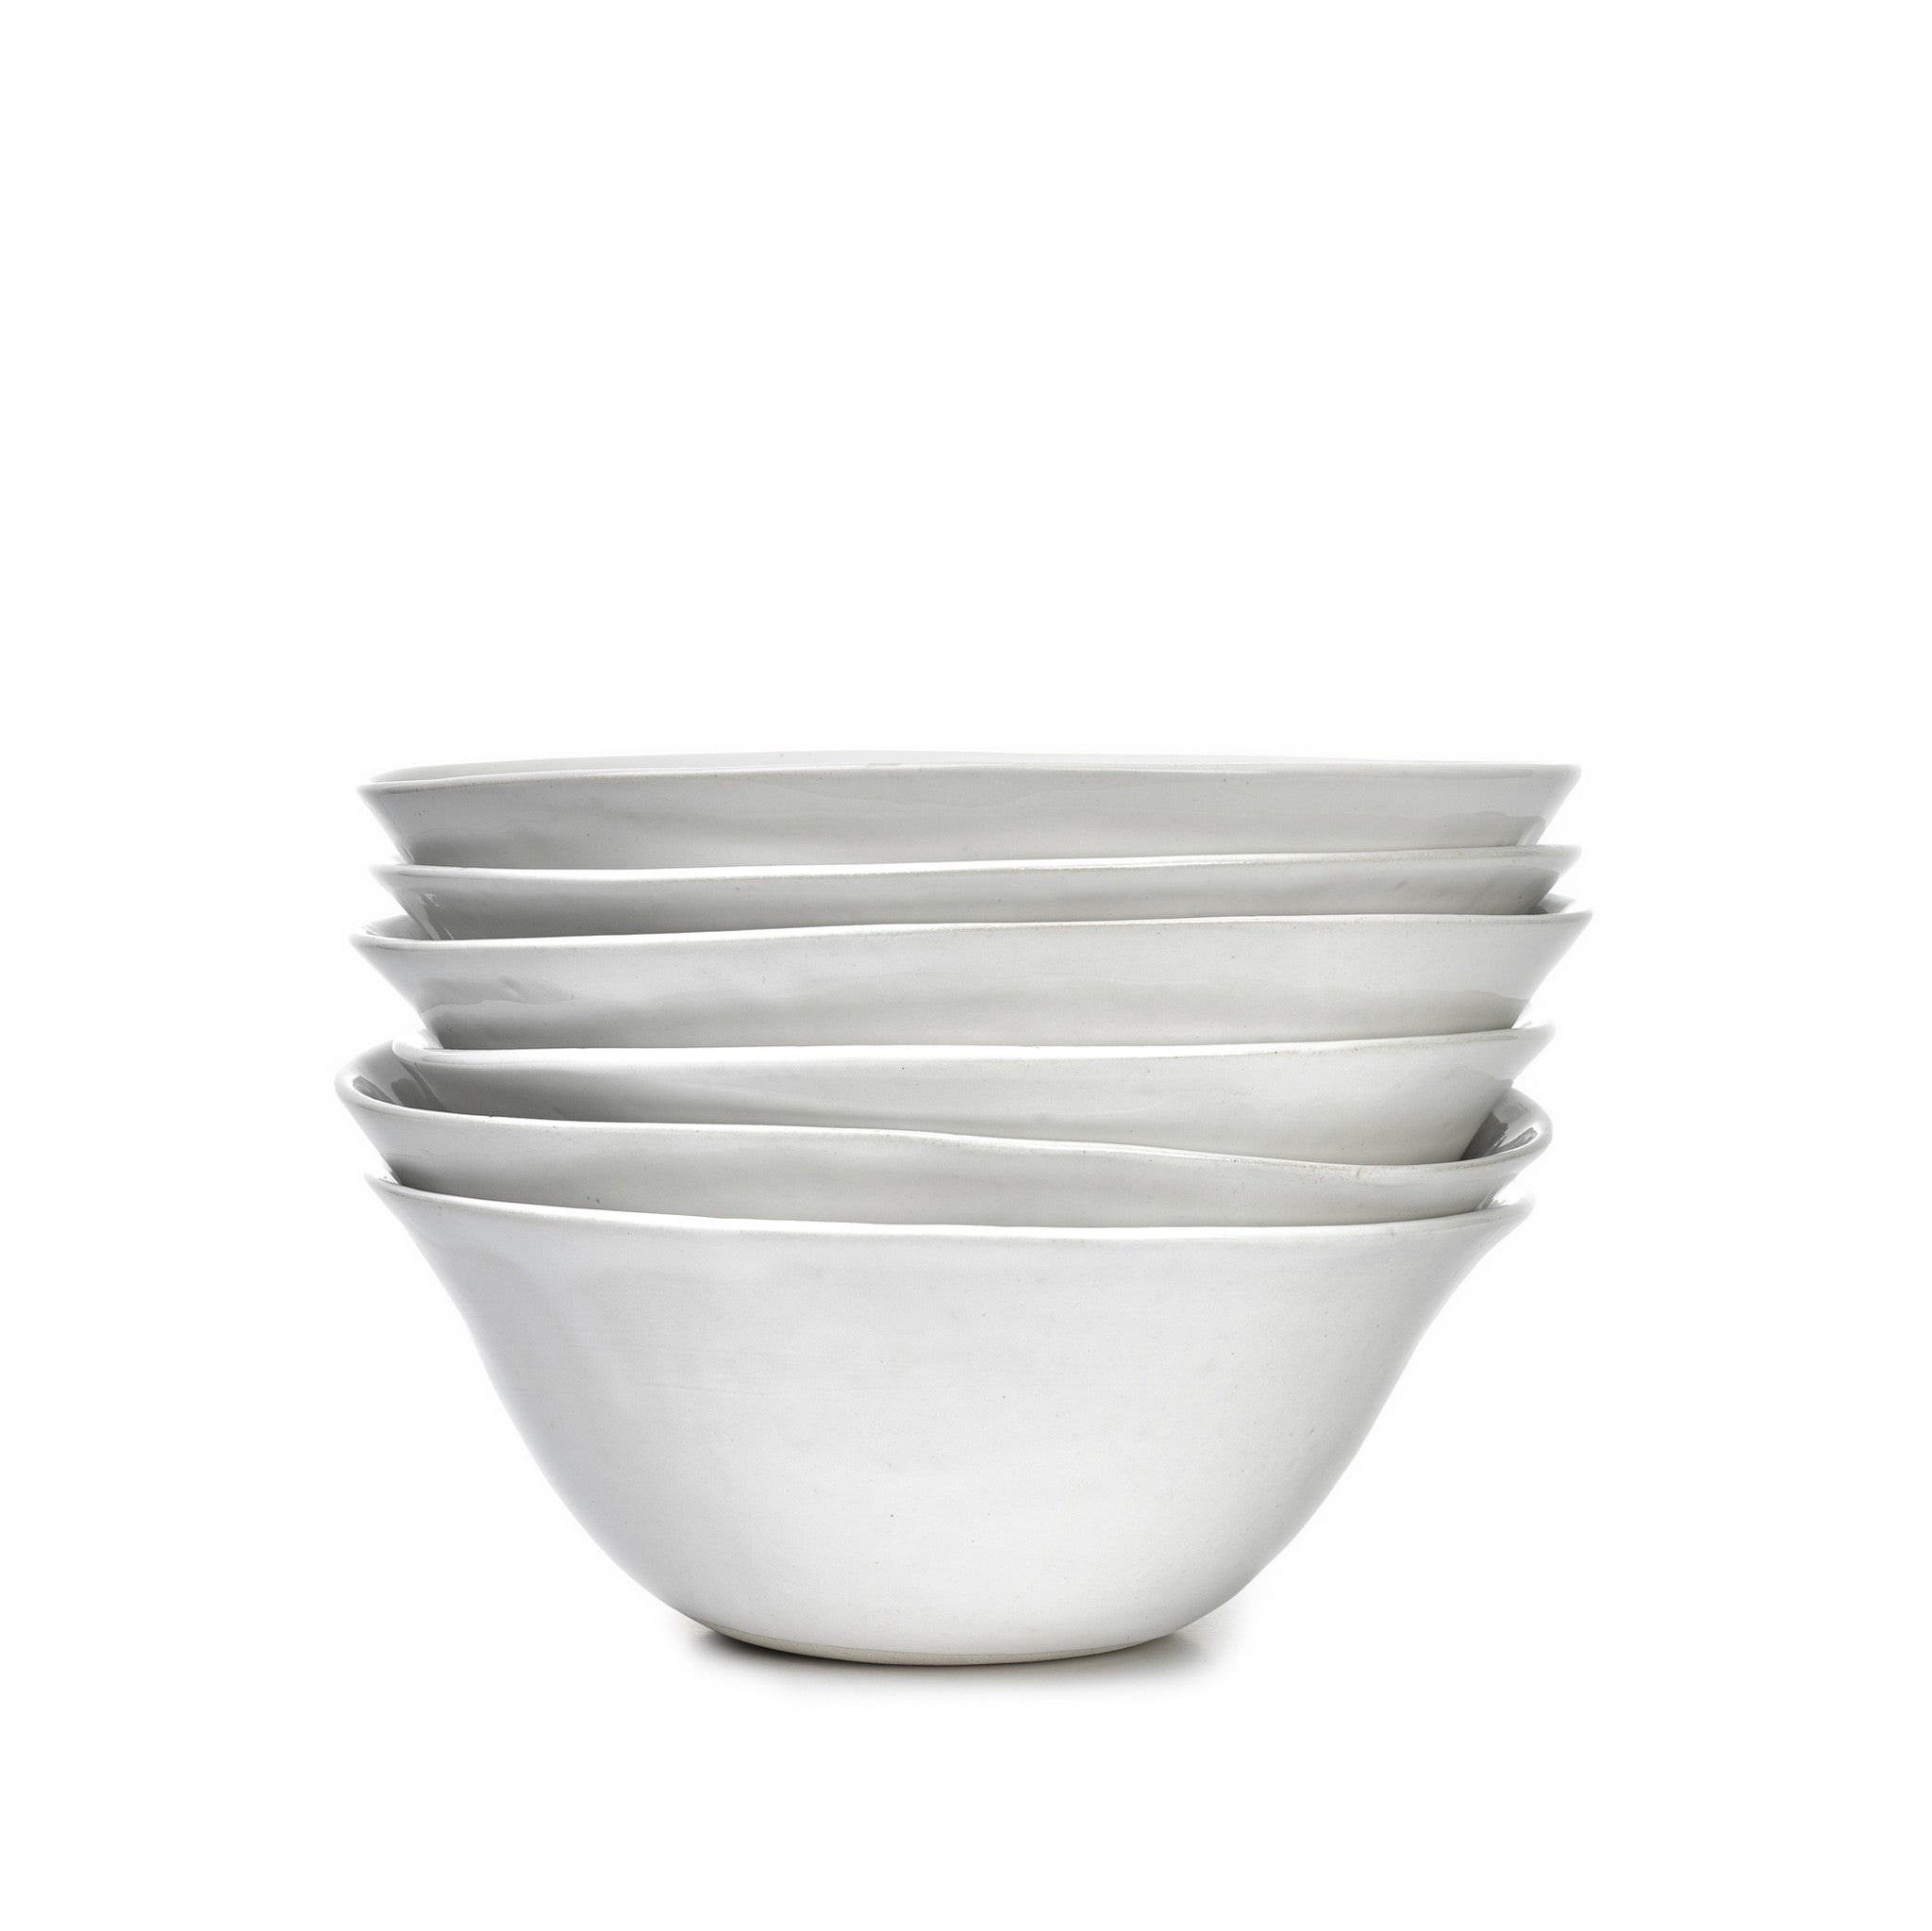 Wonki Ware Pasta Bowl in White, 22cm